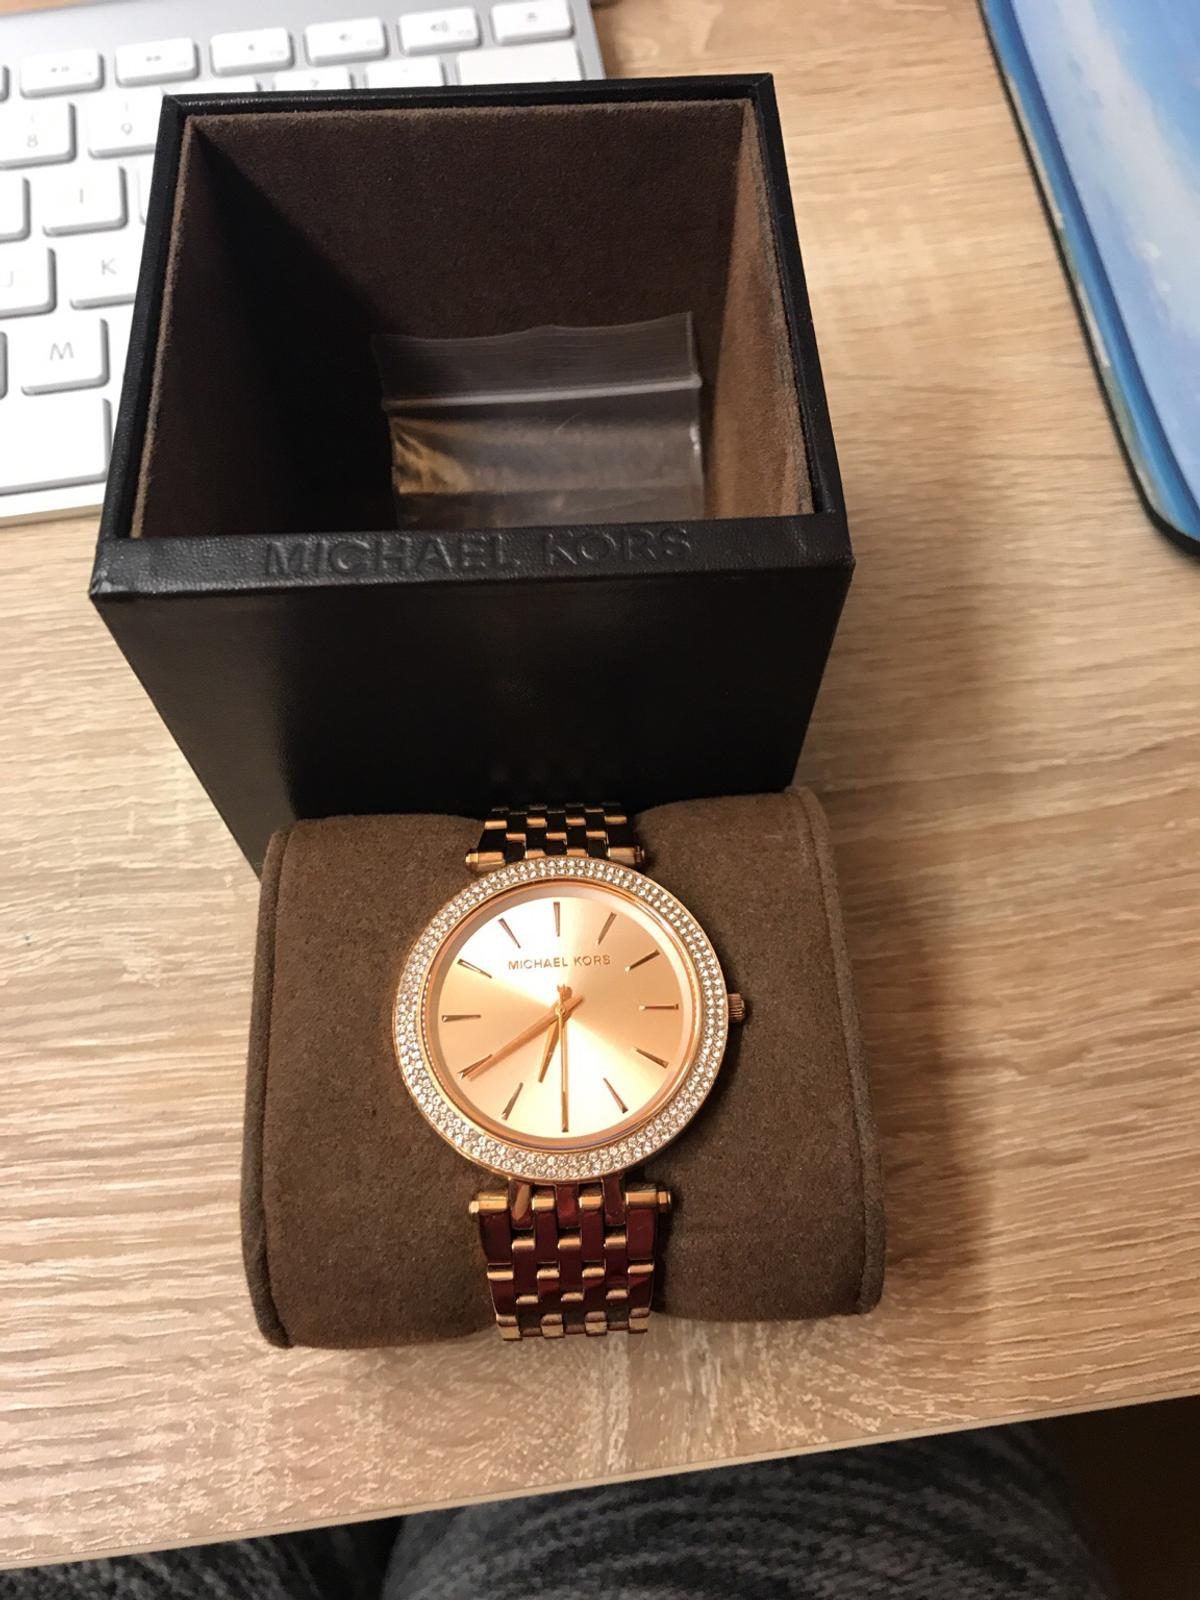 Originale Michael kors Uhr, Rose Gold